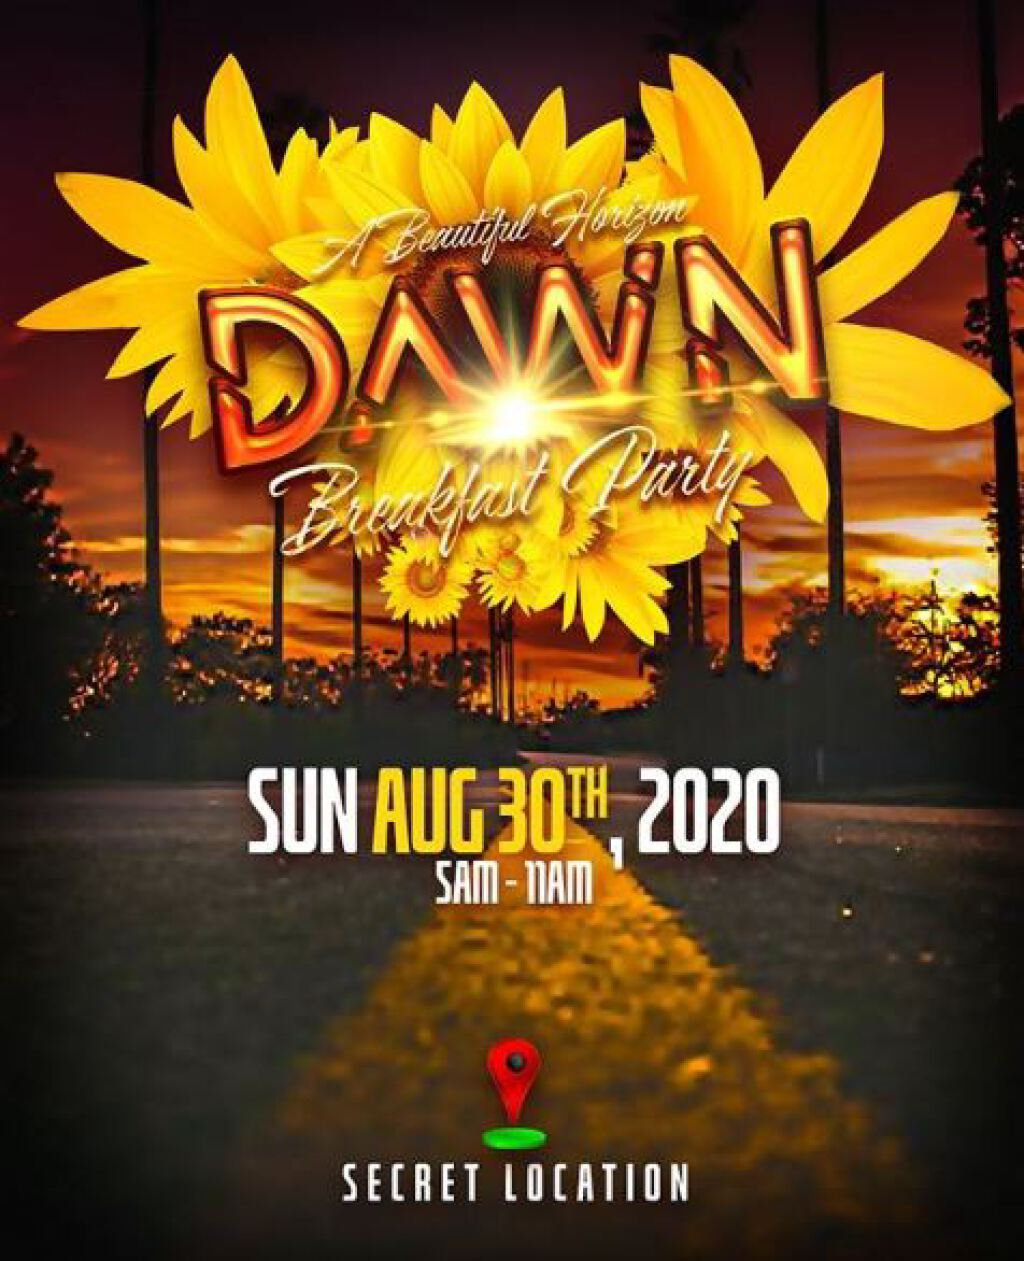 Dawn flyer or graphic.